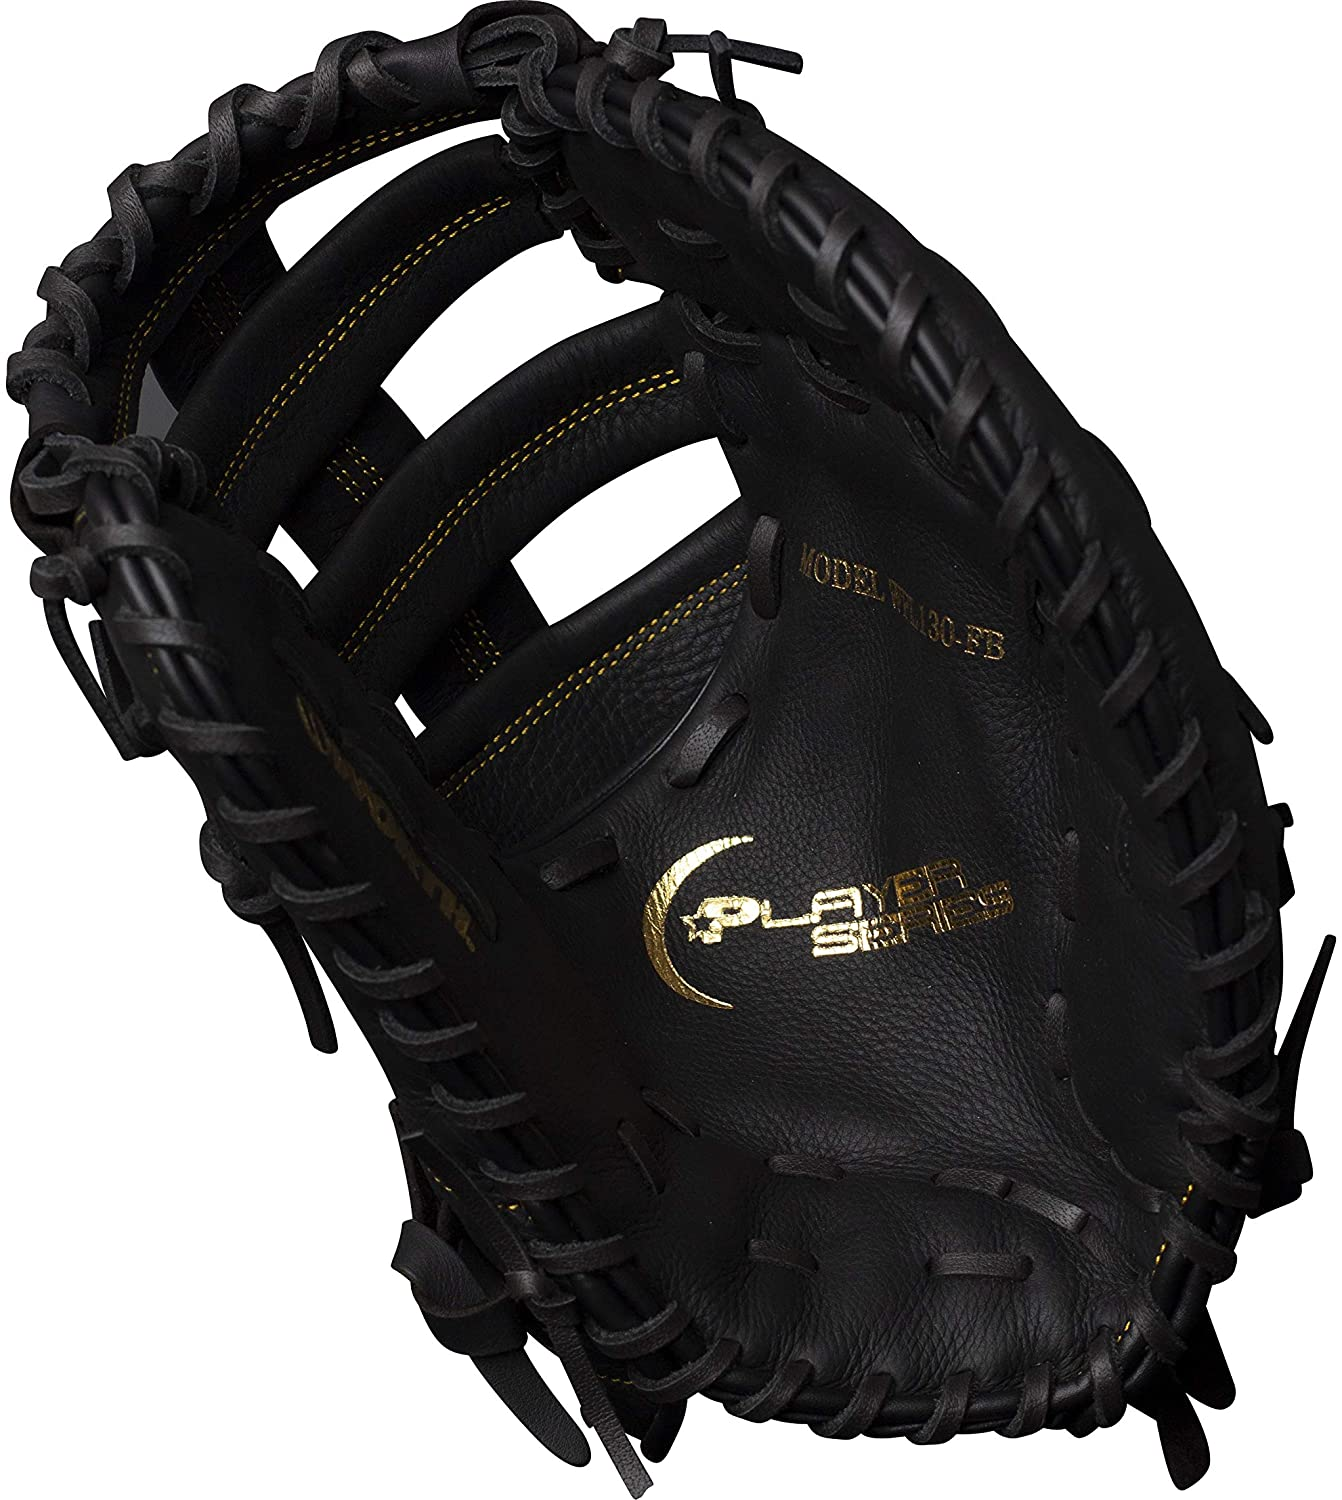 Player series from Worth is a Slow Pitch softball glove featuring pro performance and a economy price. Quality full grain leather for enhanced durability. Strong durable leather lace for continued performance. Improved fit with patented hand adjustments. Quick, easy break in for game ready feel.